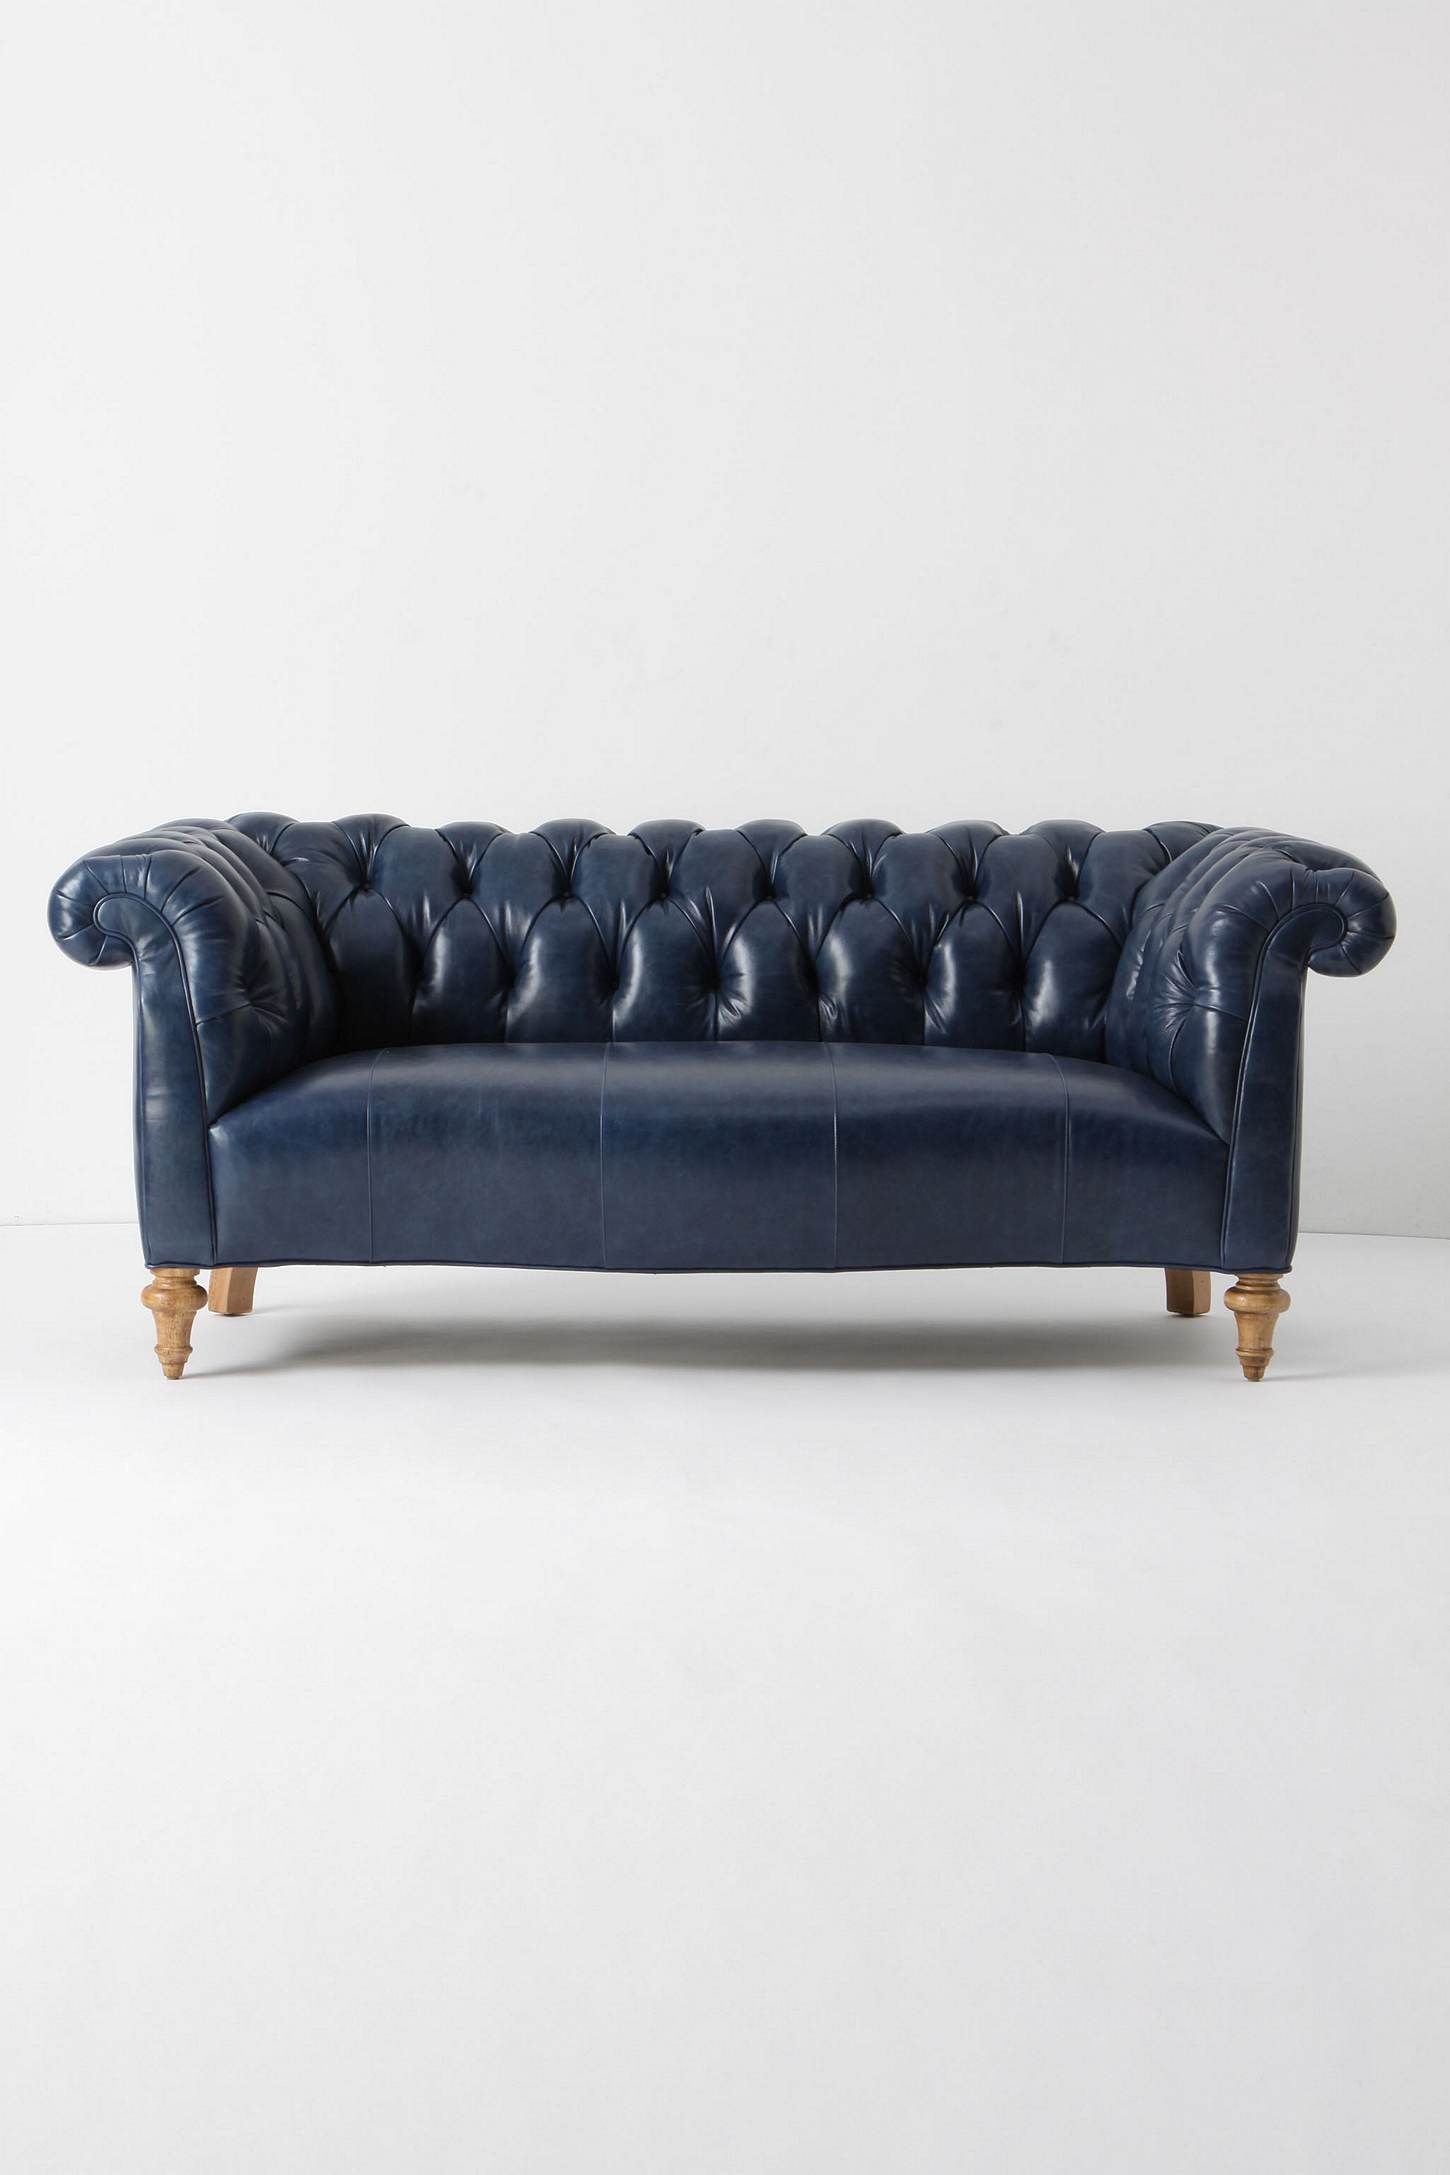 Milo Sofa   For Lounging (Couches, Chairs & Seating)   Pinterest Pertaining To Milo Sofa Chairs (Image 15 of 25)